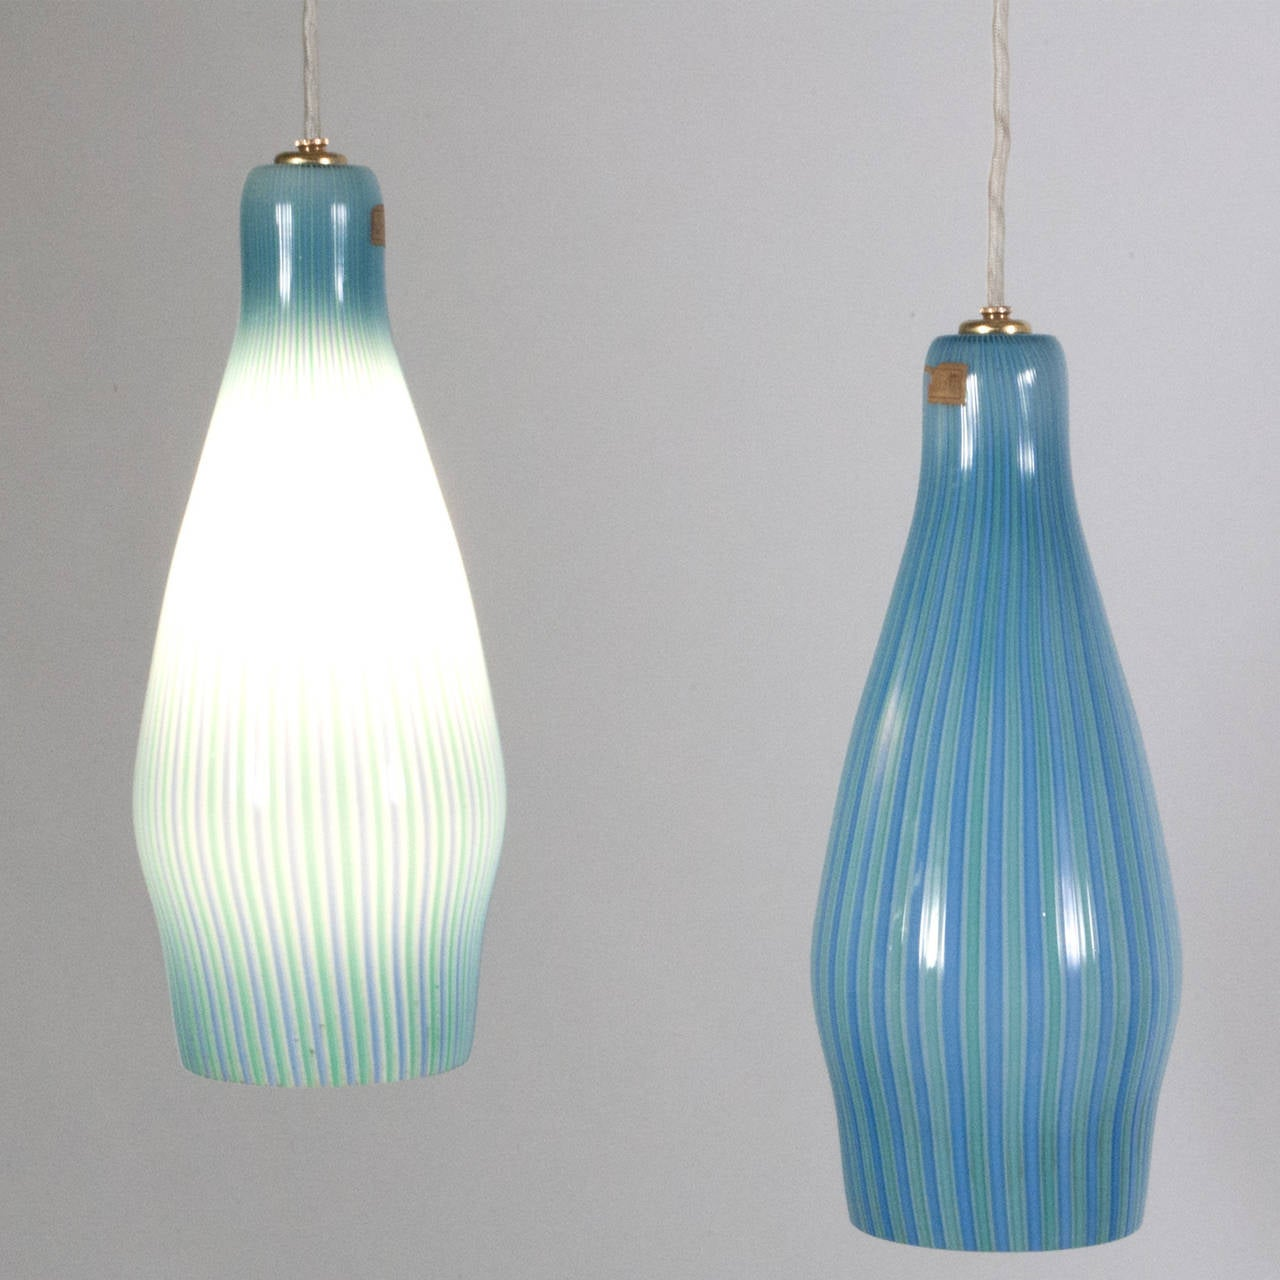 Mid-Century Modern Pair of Pendant Lamps by Venini For Sale